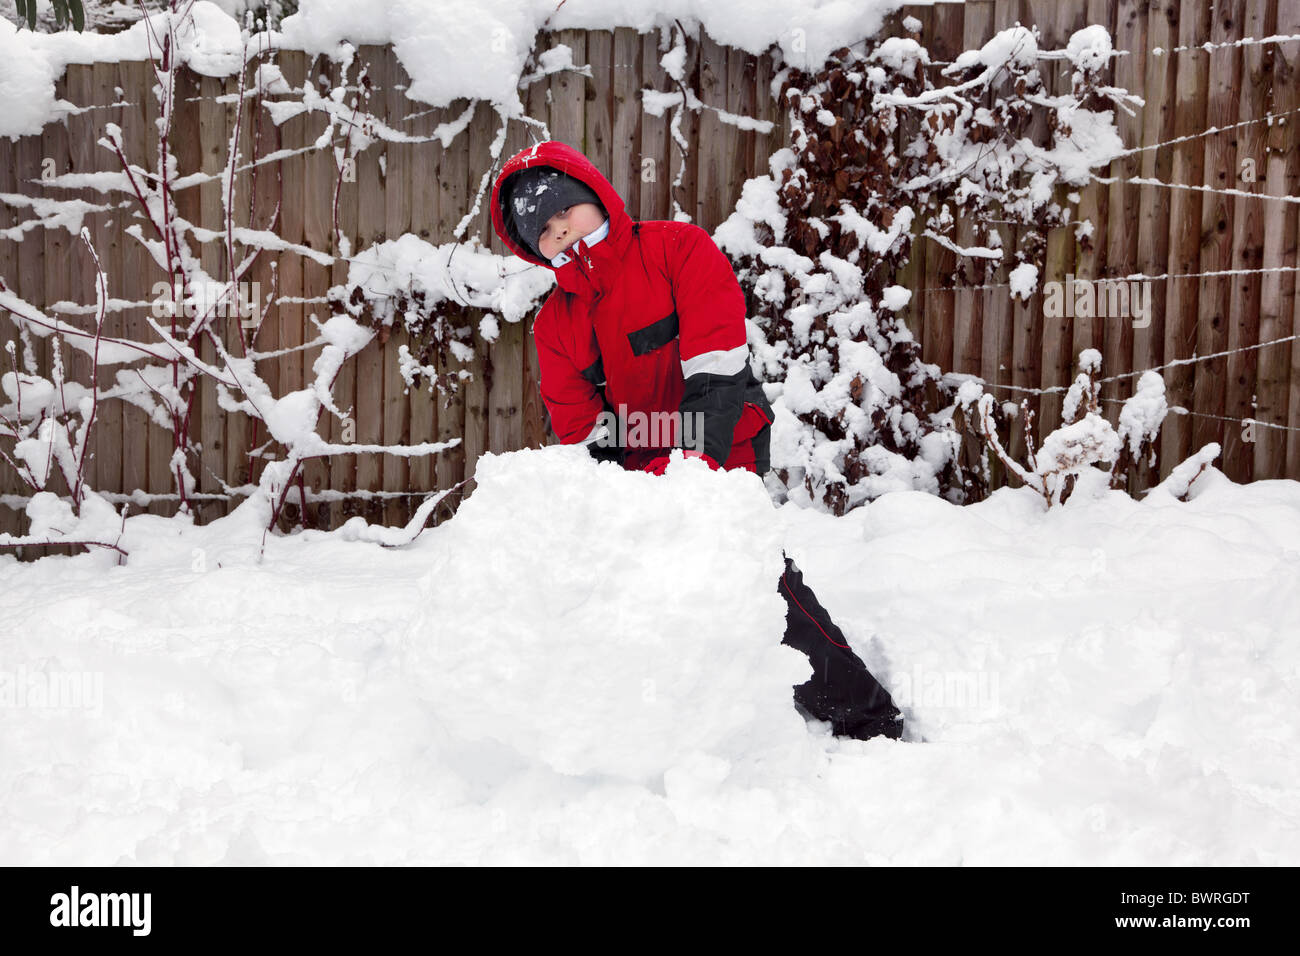 A young boy playing in the snow rolling a snowball to make a snowman. - Stock Image